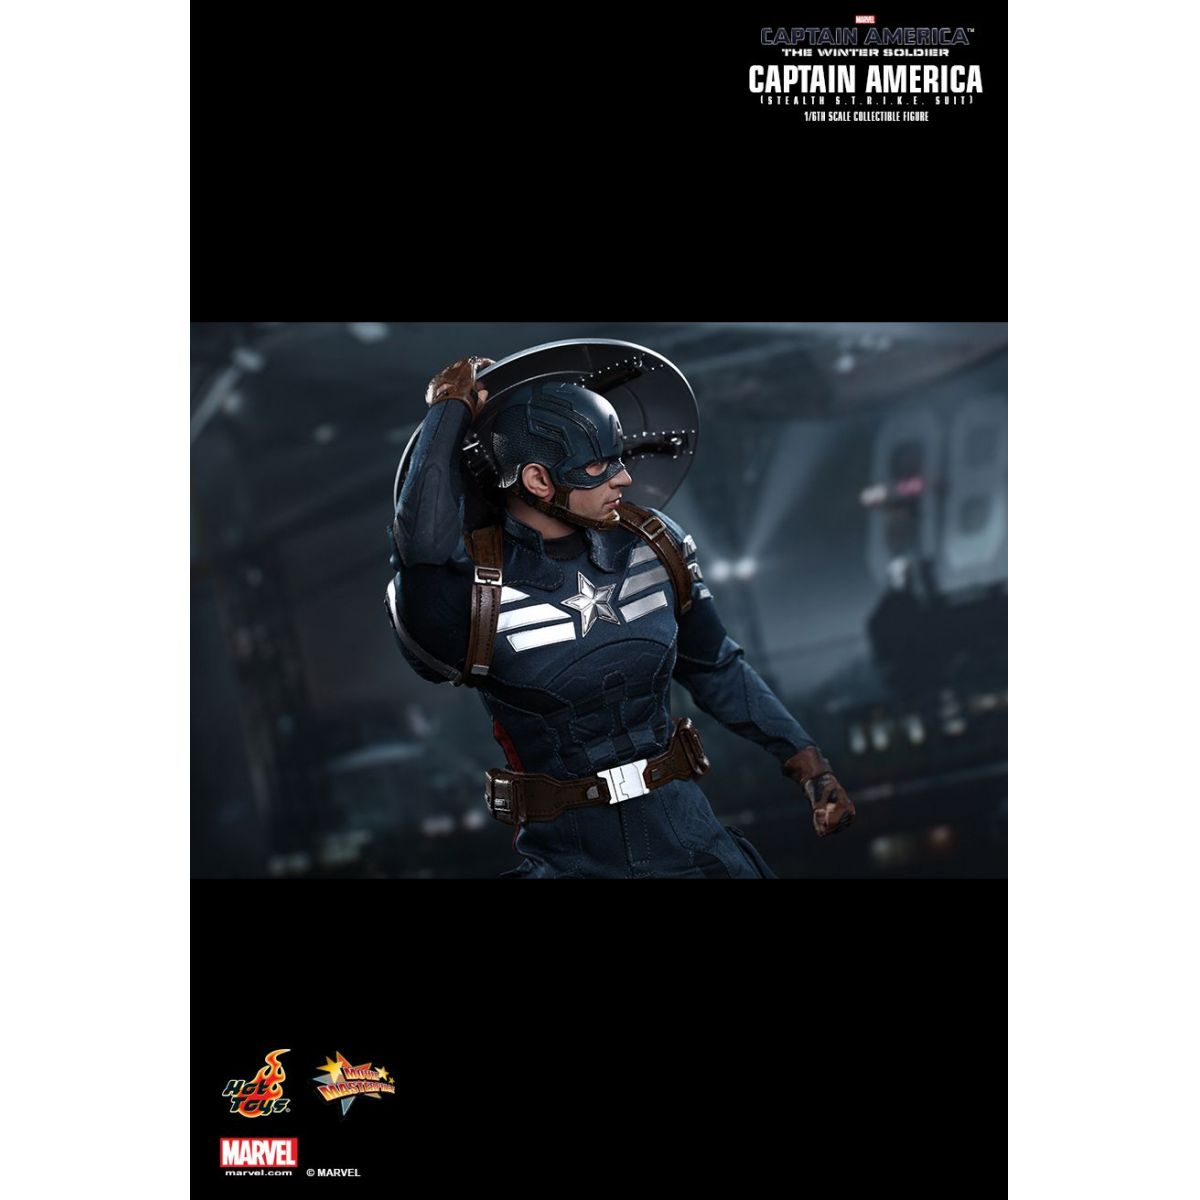 Boneco Capitão América (Stealth STRIKE Suit): Capitão América 2: O Soldado Invernal (The Winter Soldier) Escala 1/6 - Hot Toys - CD